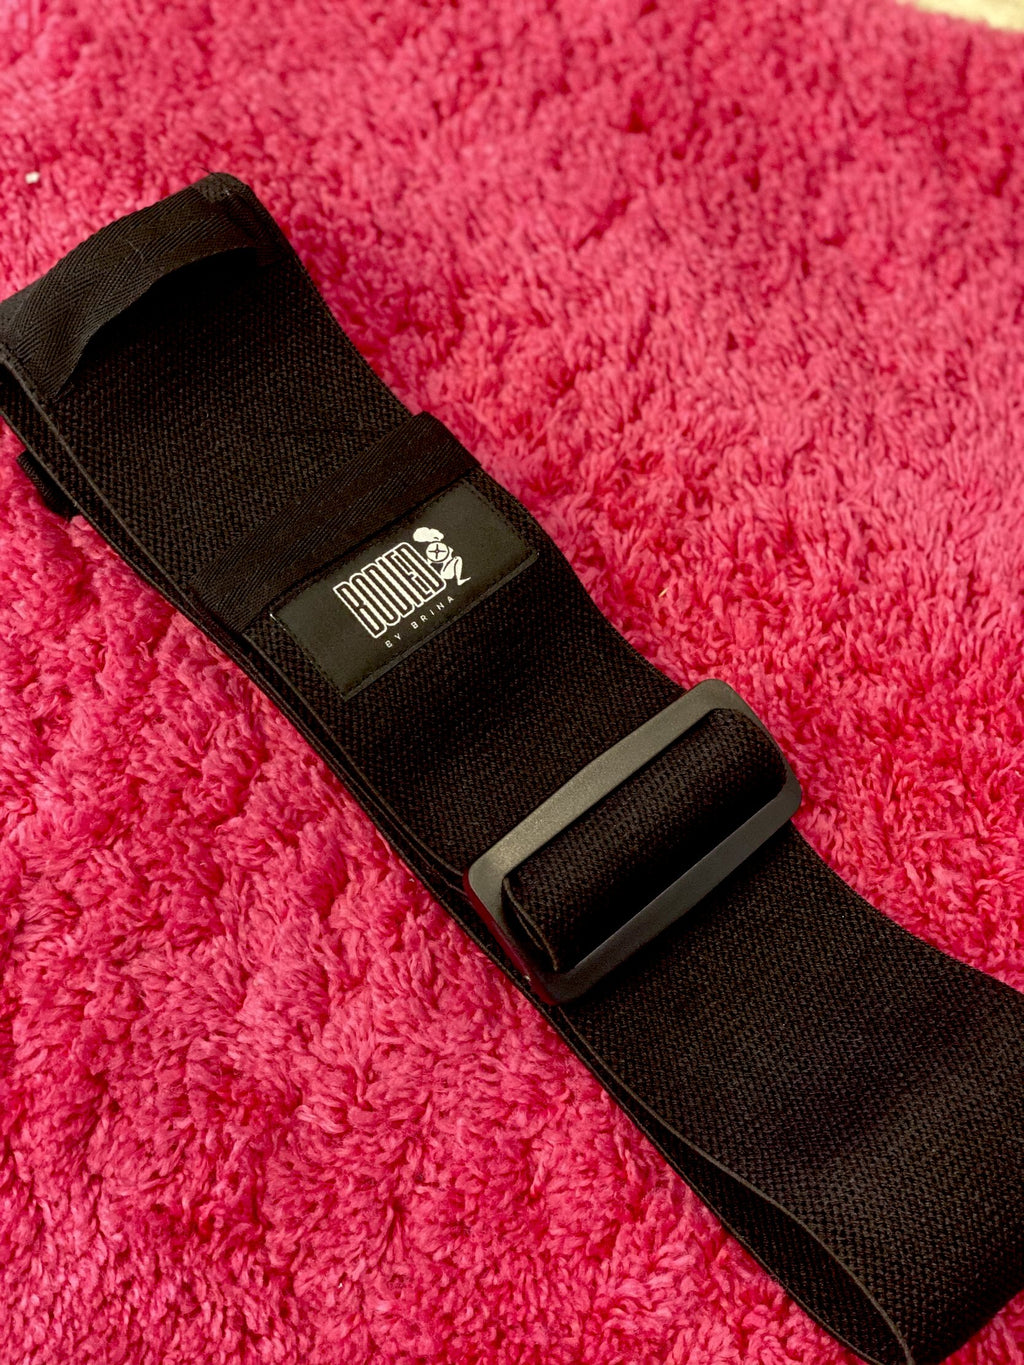 BodybyBrina Adjustable Resistance Bands